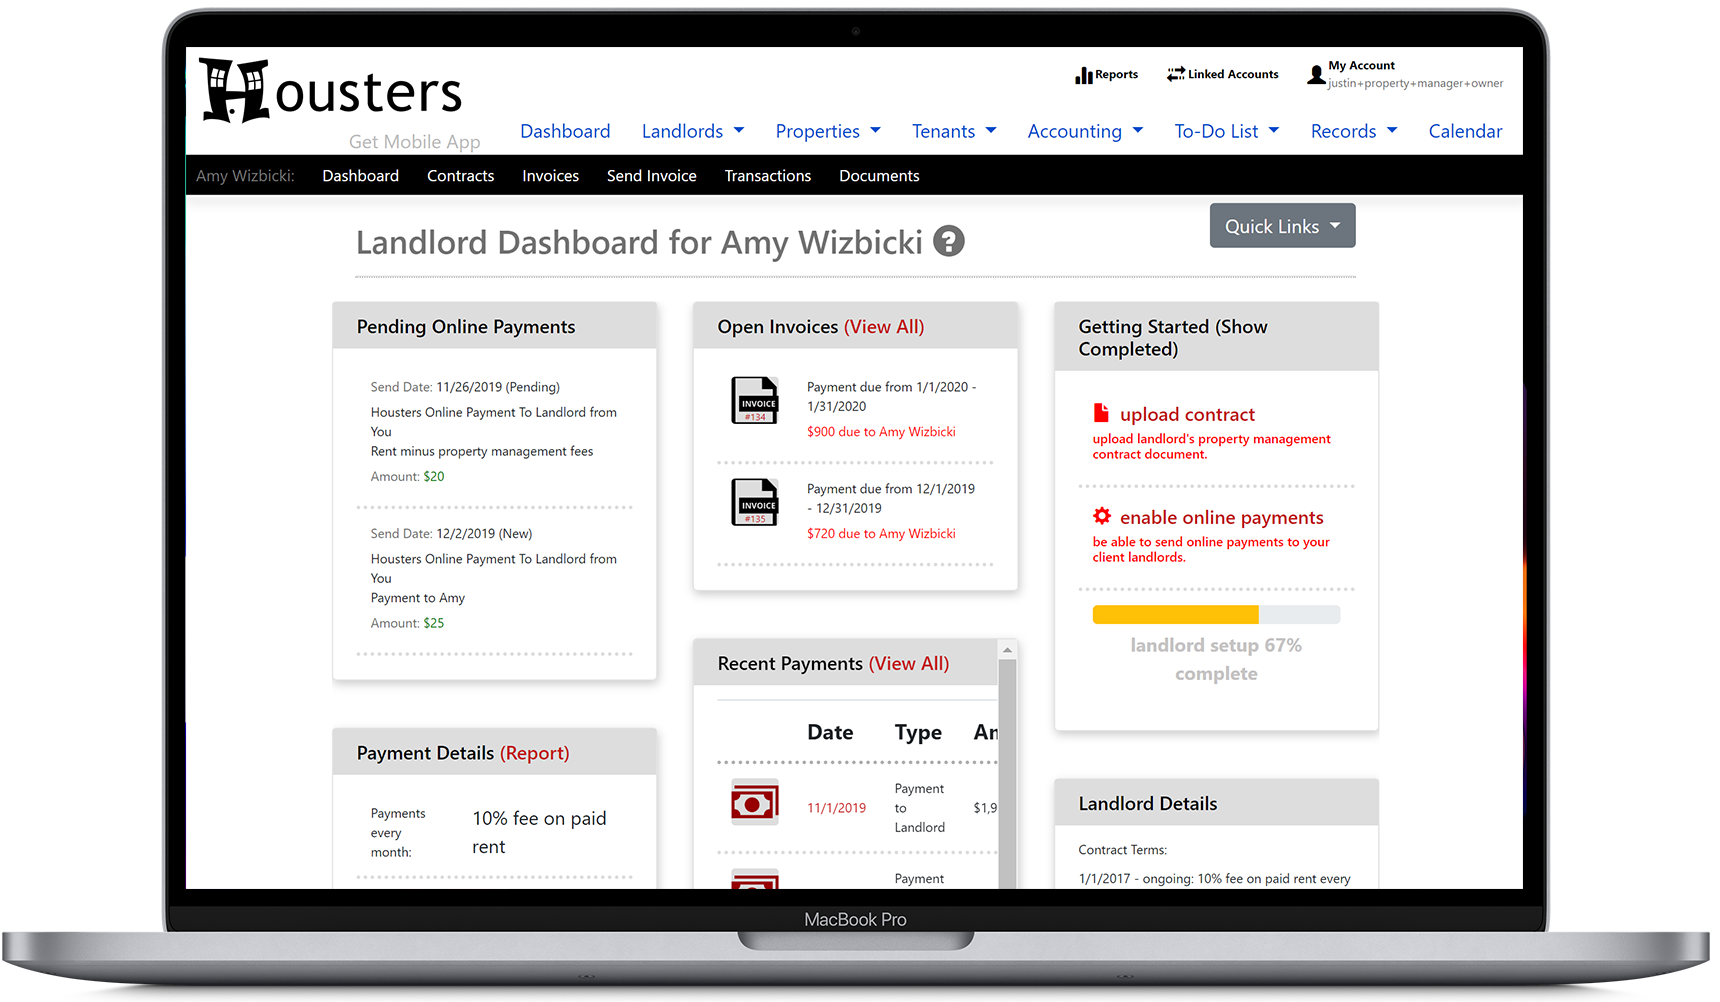 View the landlord dashboard, showing pending online payments, open invoices, and landlord details